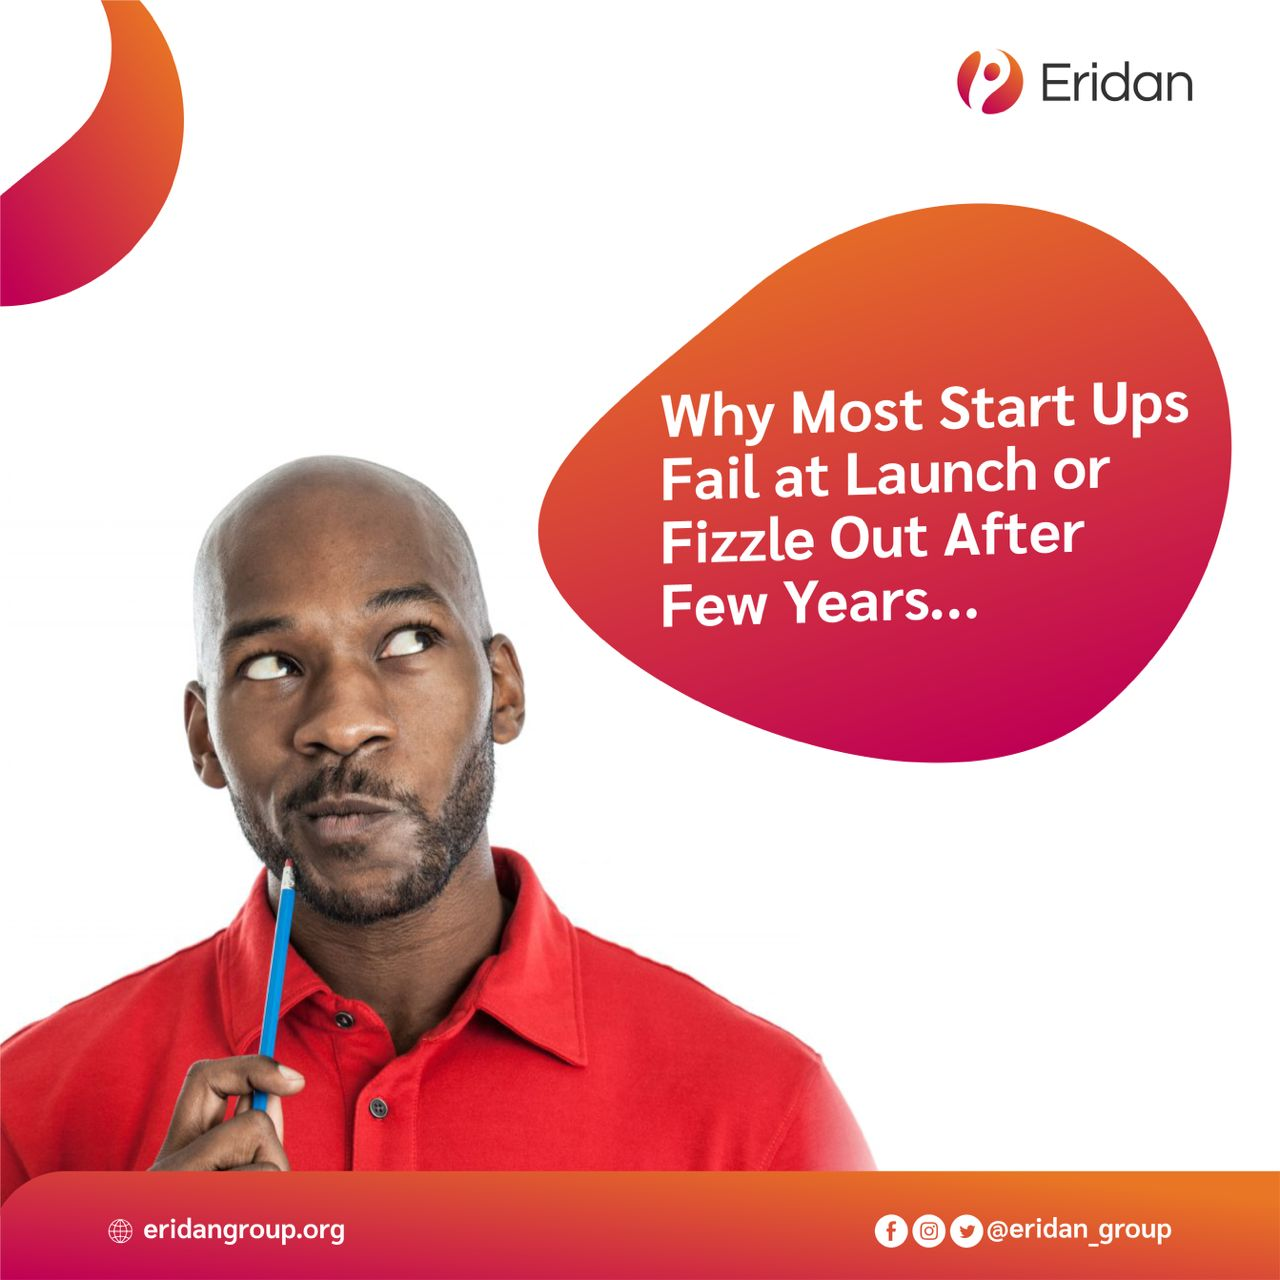 WHY MOST START UPS FAIL AT LAUNCH OR FIZZLE OUT AFTER FEW YEARS